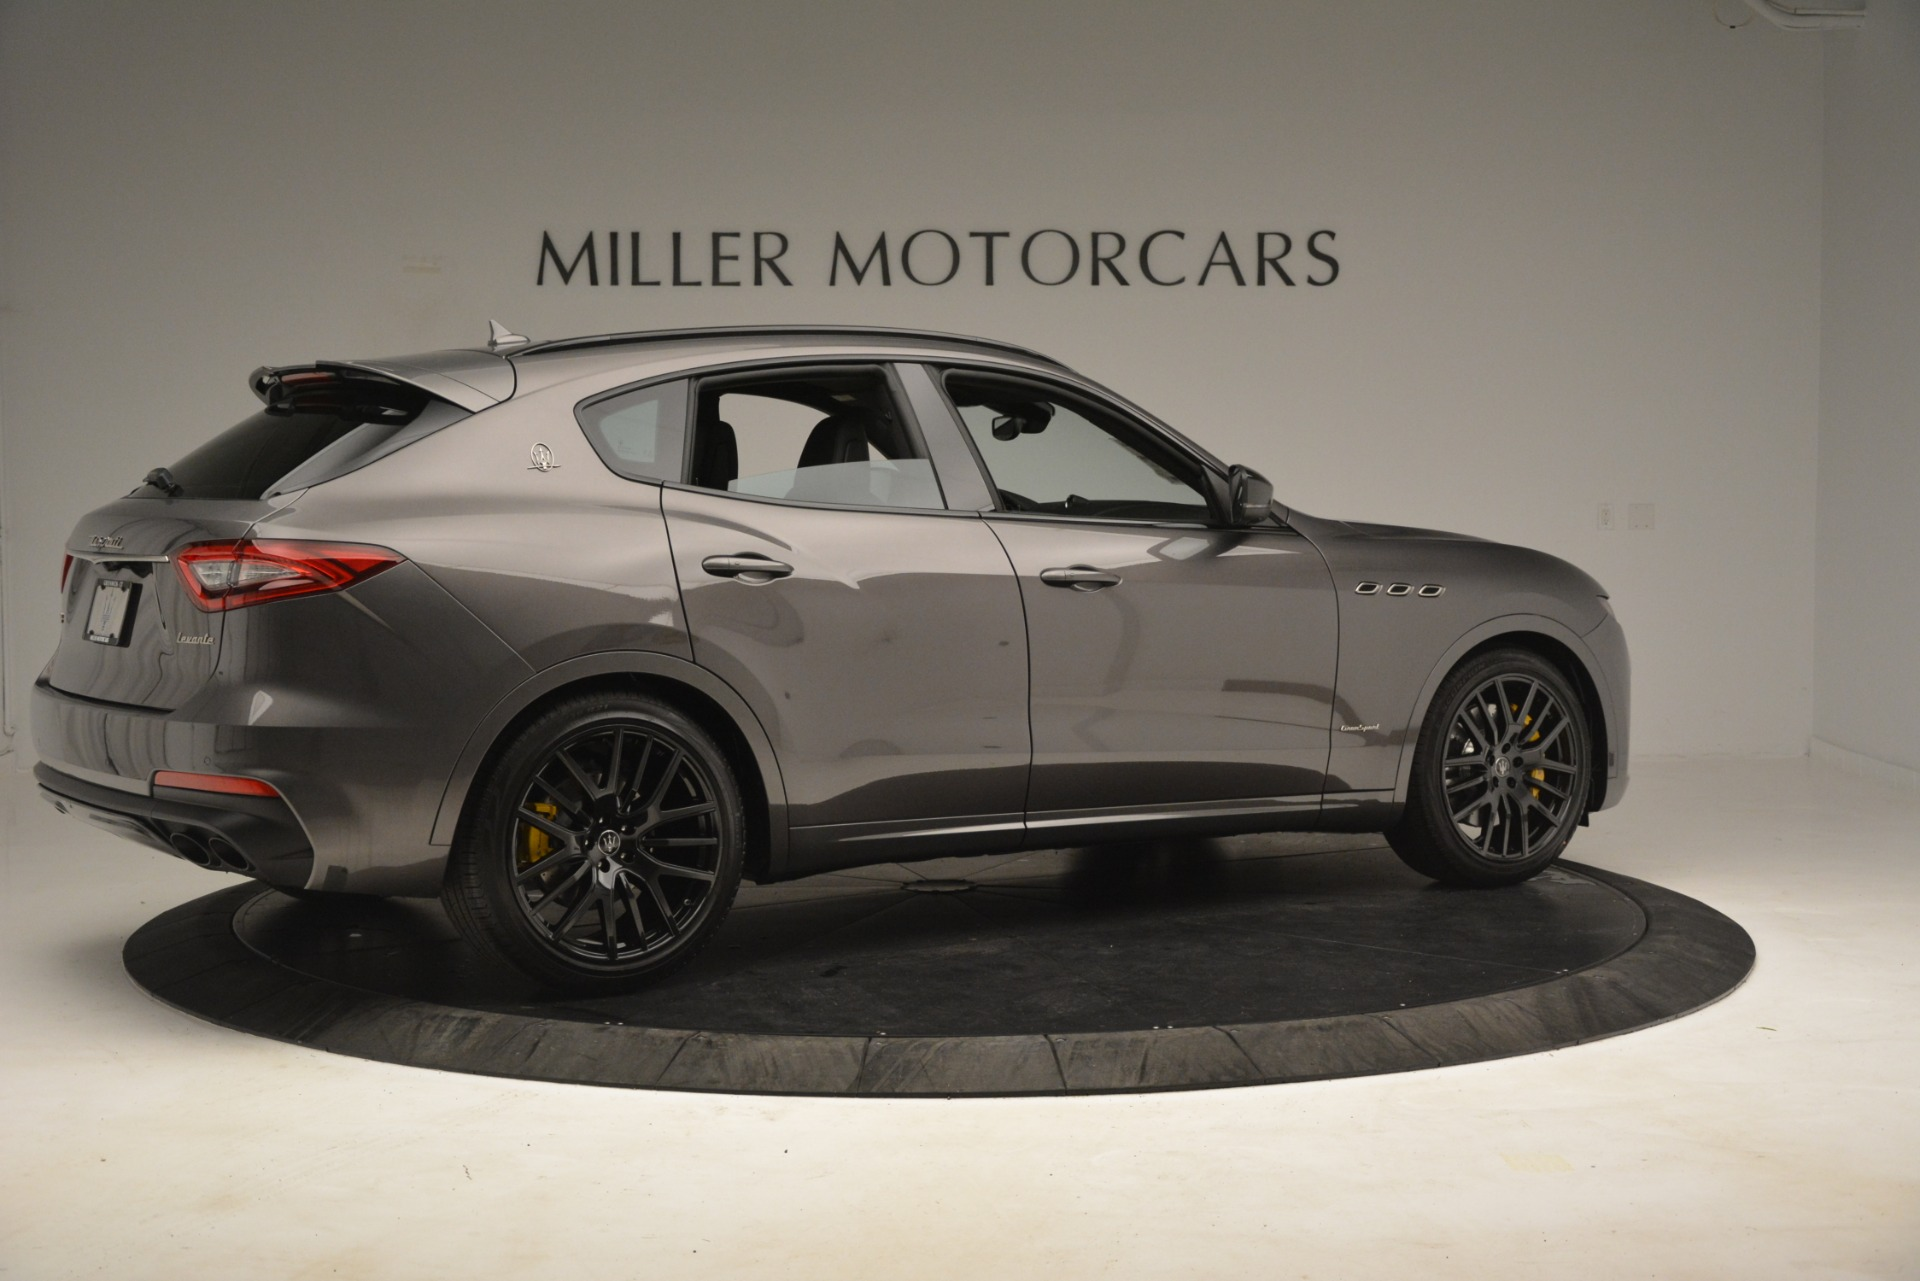 New 2019 Maserati Levante SQ4 GranSport Nerissimo For Sale In Westport, CT 3146_p8